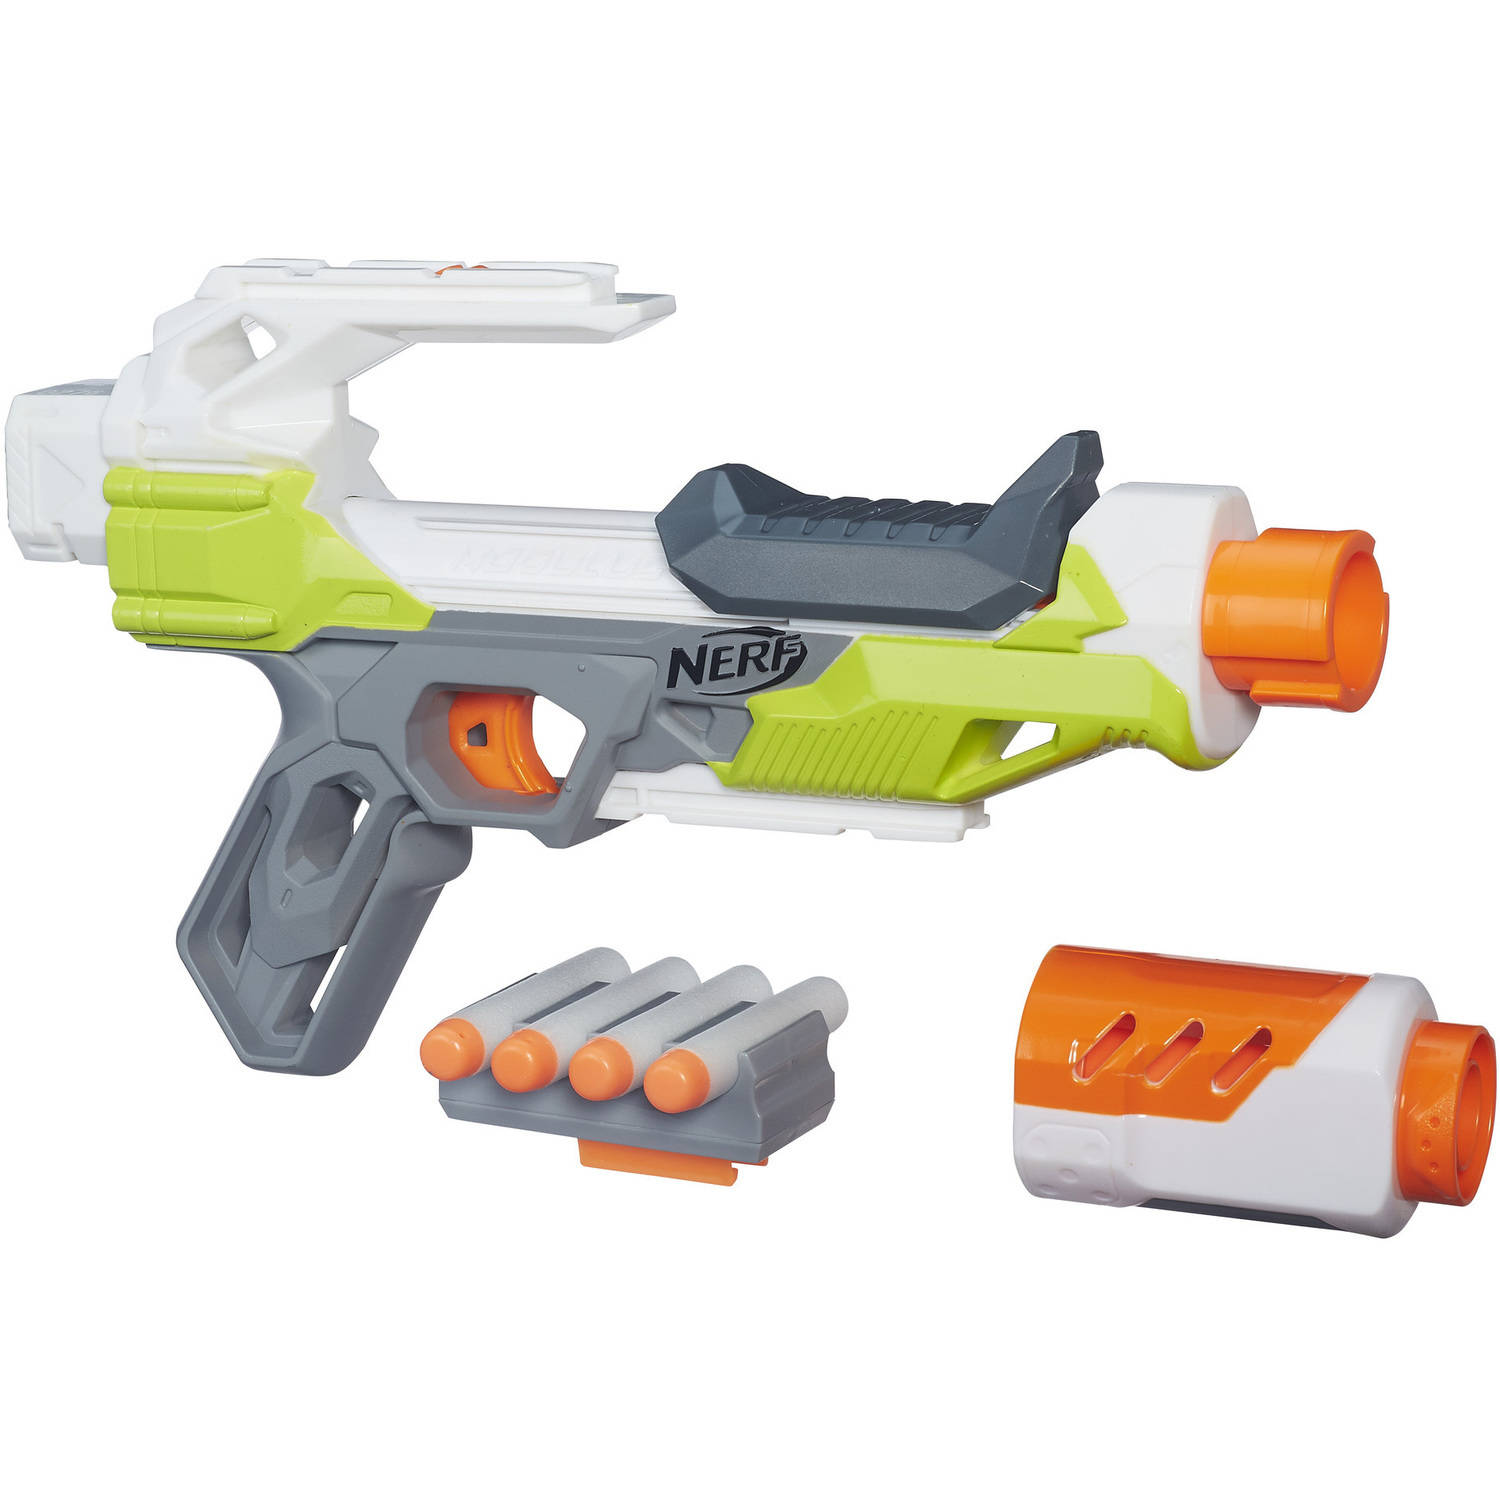 NERF N-STRIKE MODULUS ECS-10 AND UPGRADE KITS / BUILD YOUR OWN .